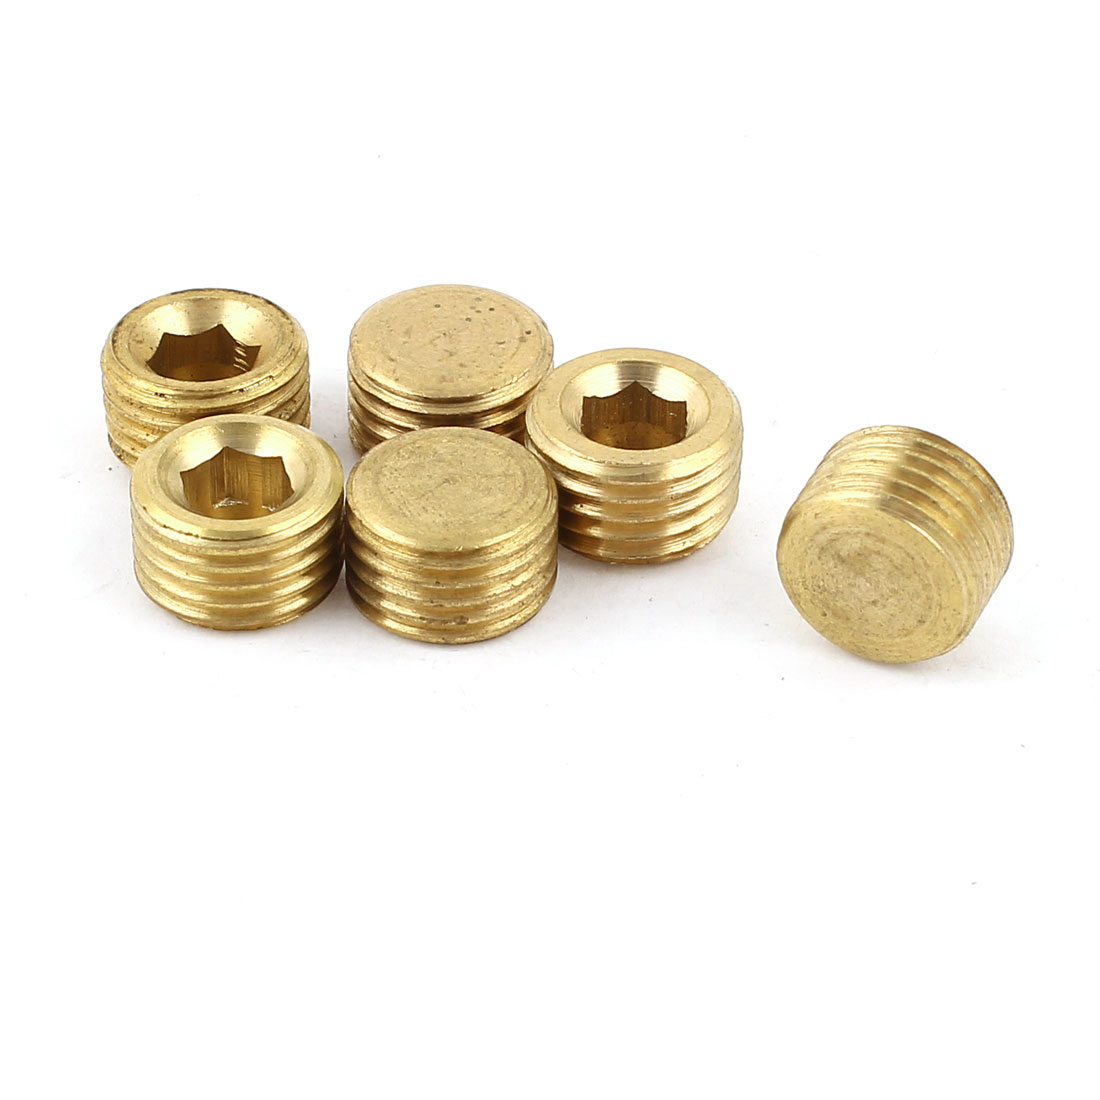 6pcs Brass Tone 1/4PT Male Thread Brass Hex Head Pipe Cover Fittings Coupler Connector